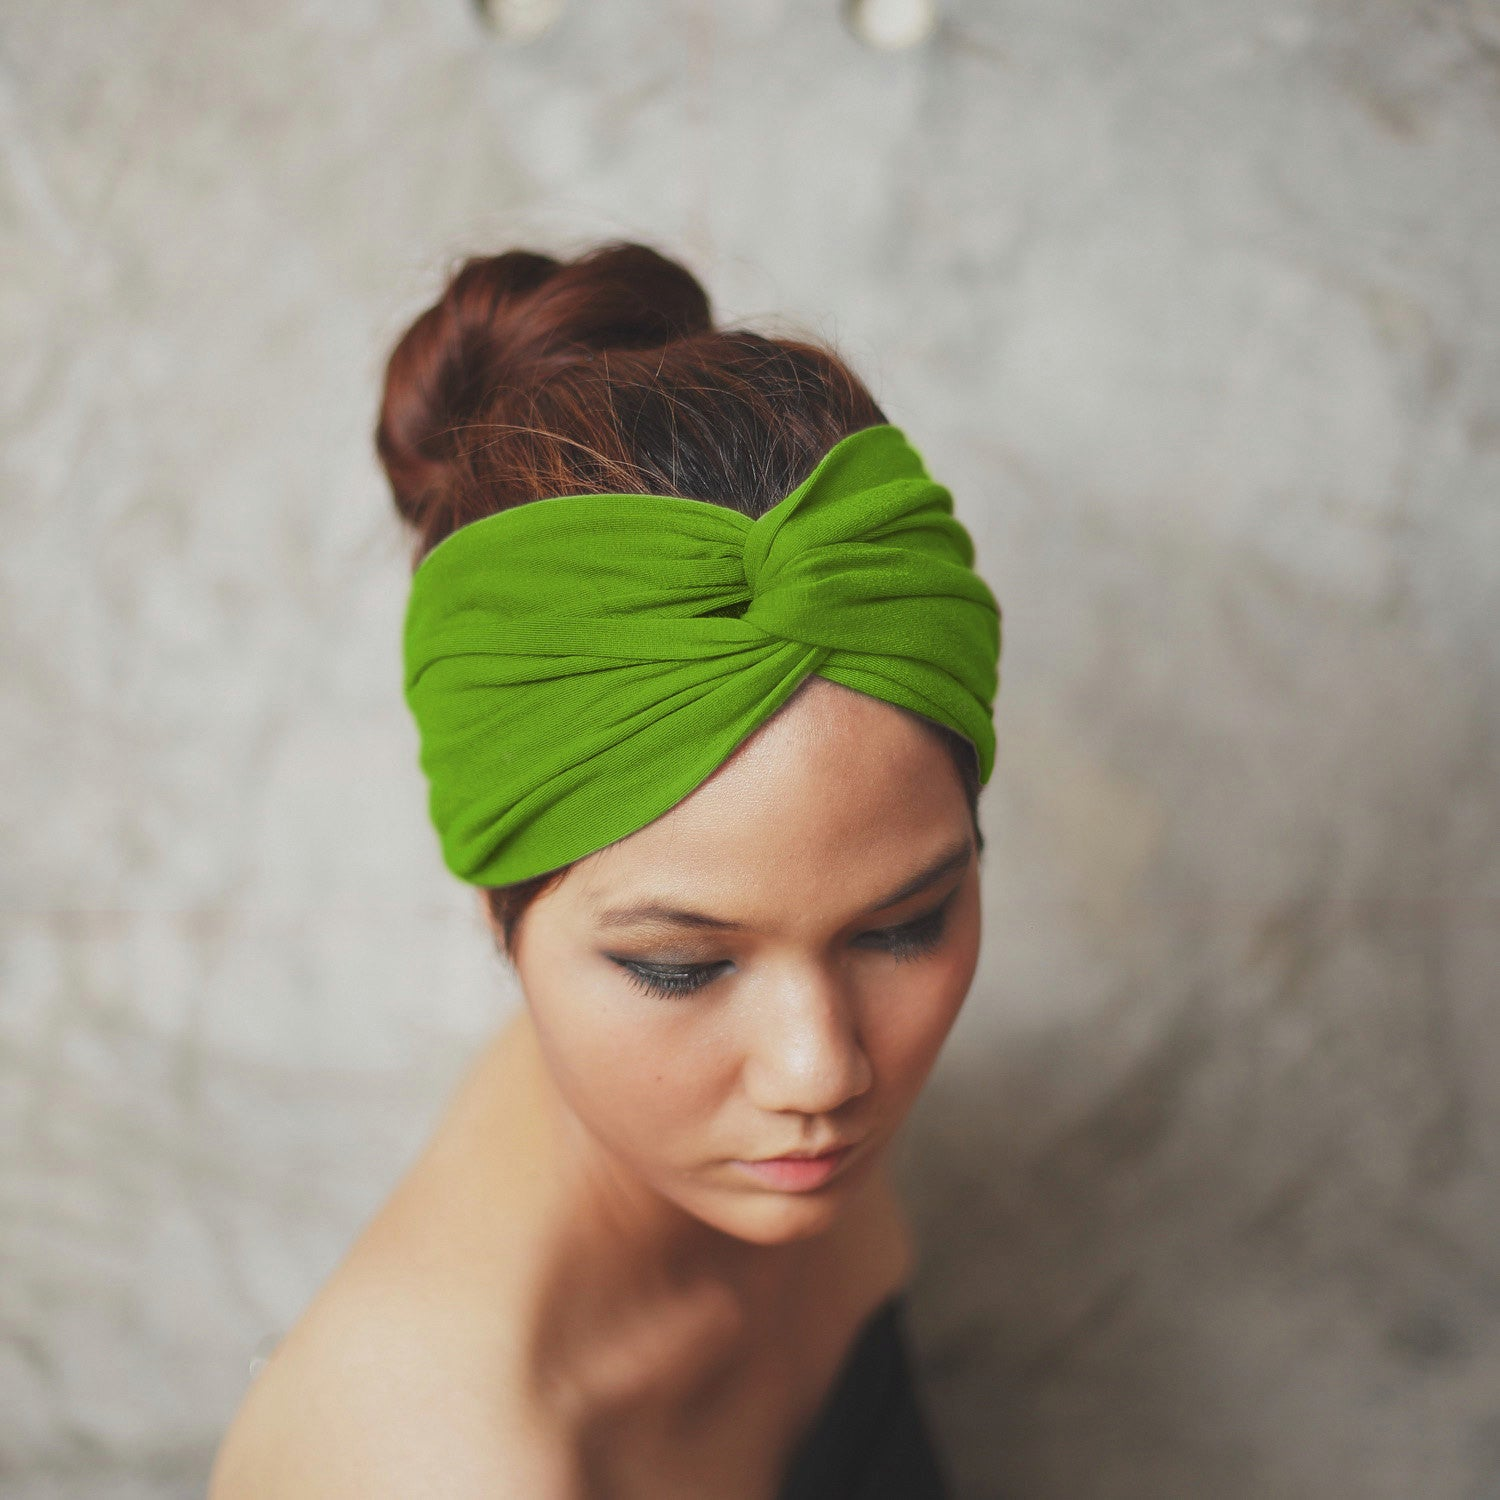 GREEN Turban Headband by Zizway 52dd5716f8c